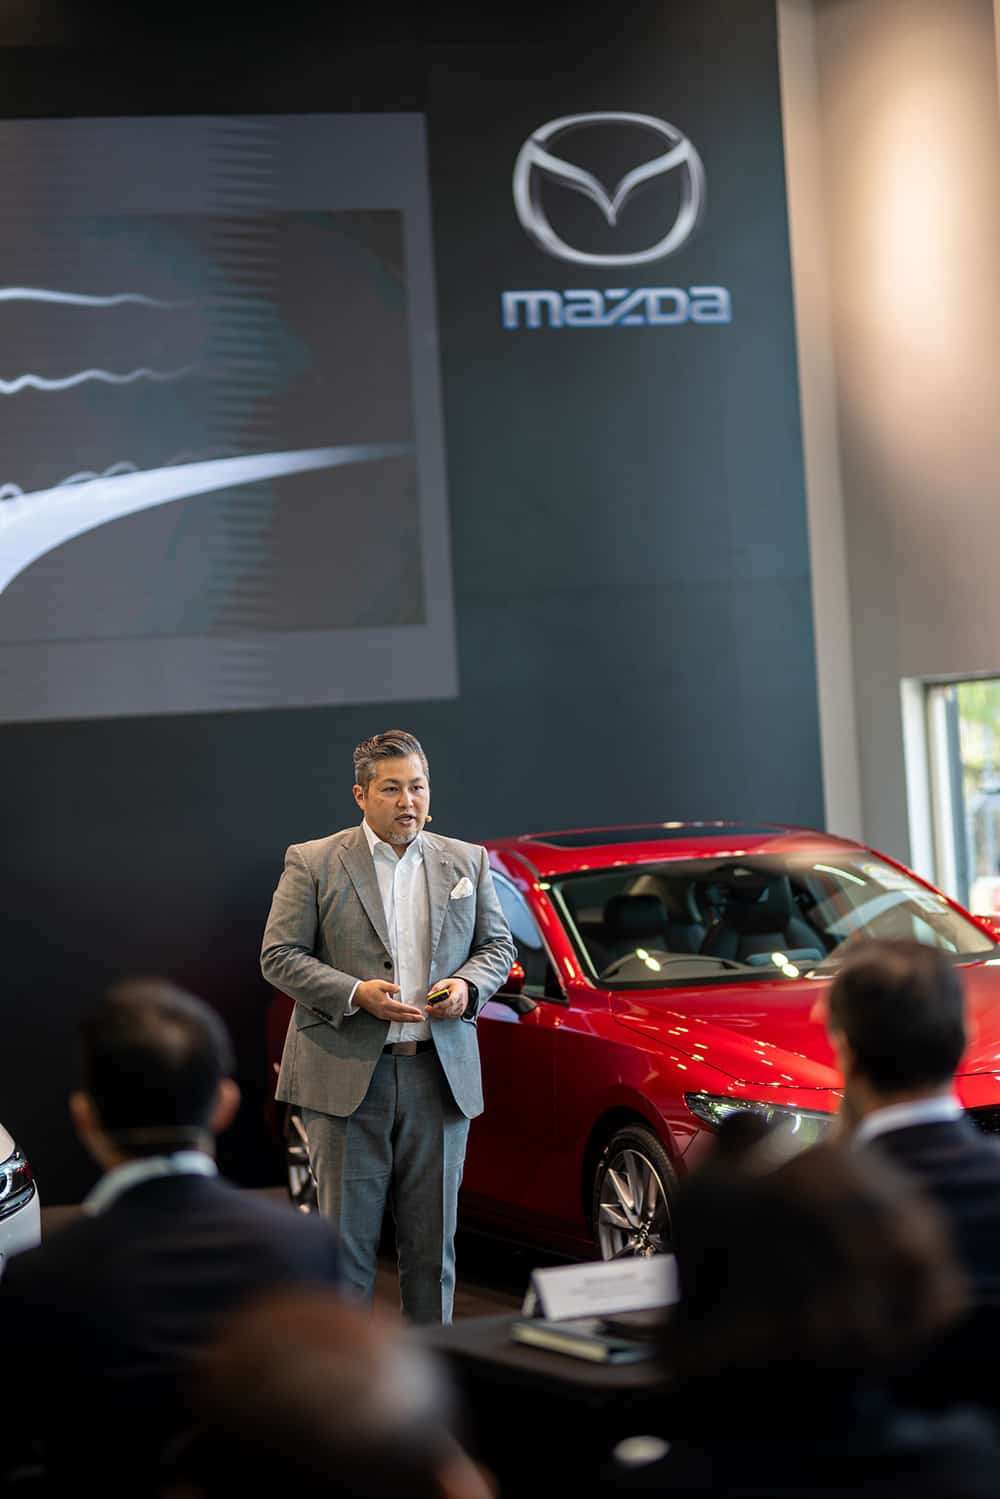 Program Manager of the All-New Mazda3, Mazda Motor Corporation highlights key features of the All-New Mazda3